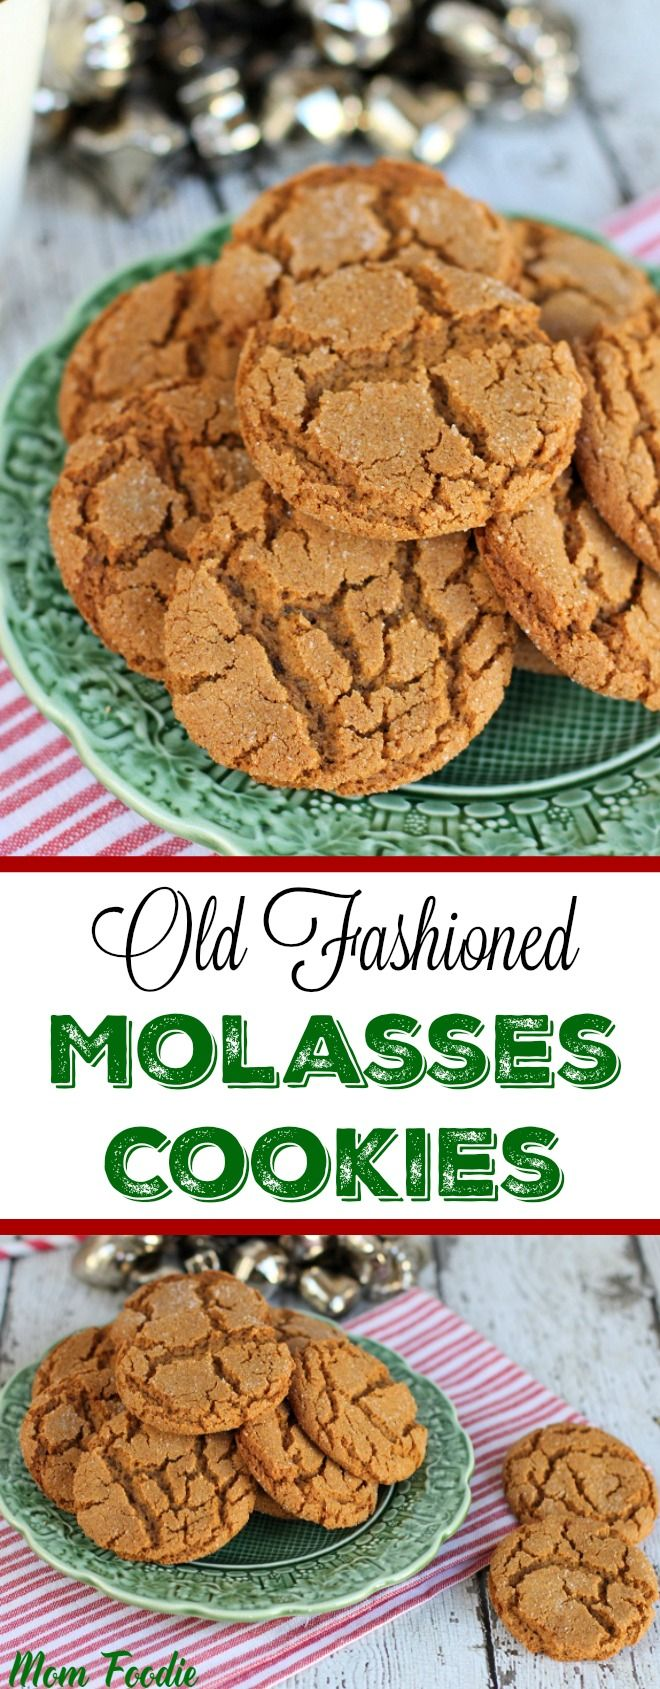 Old Fashioned Molasses Cookies Traditional Cookie That Is Great